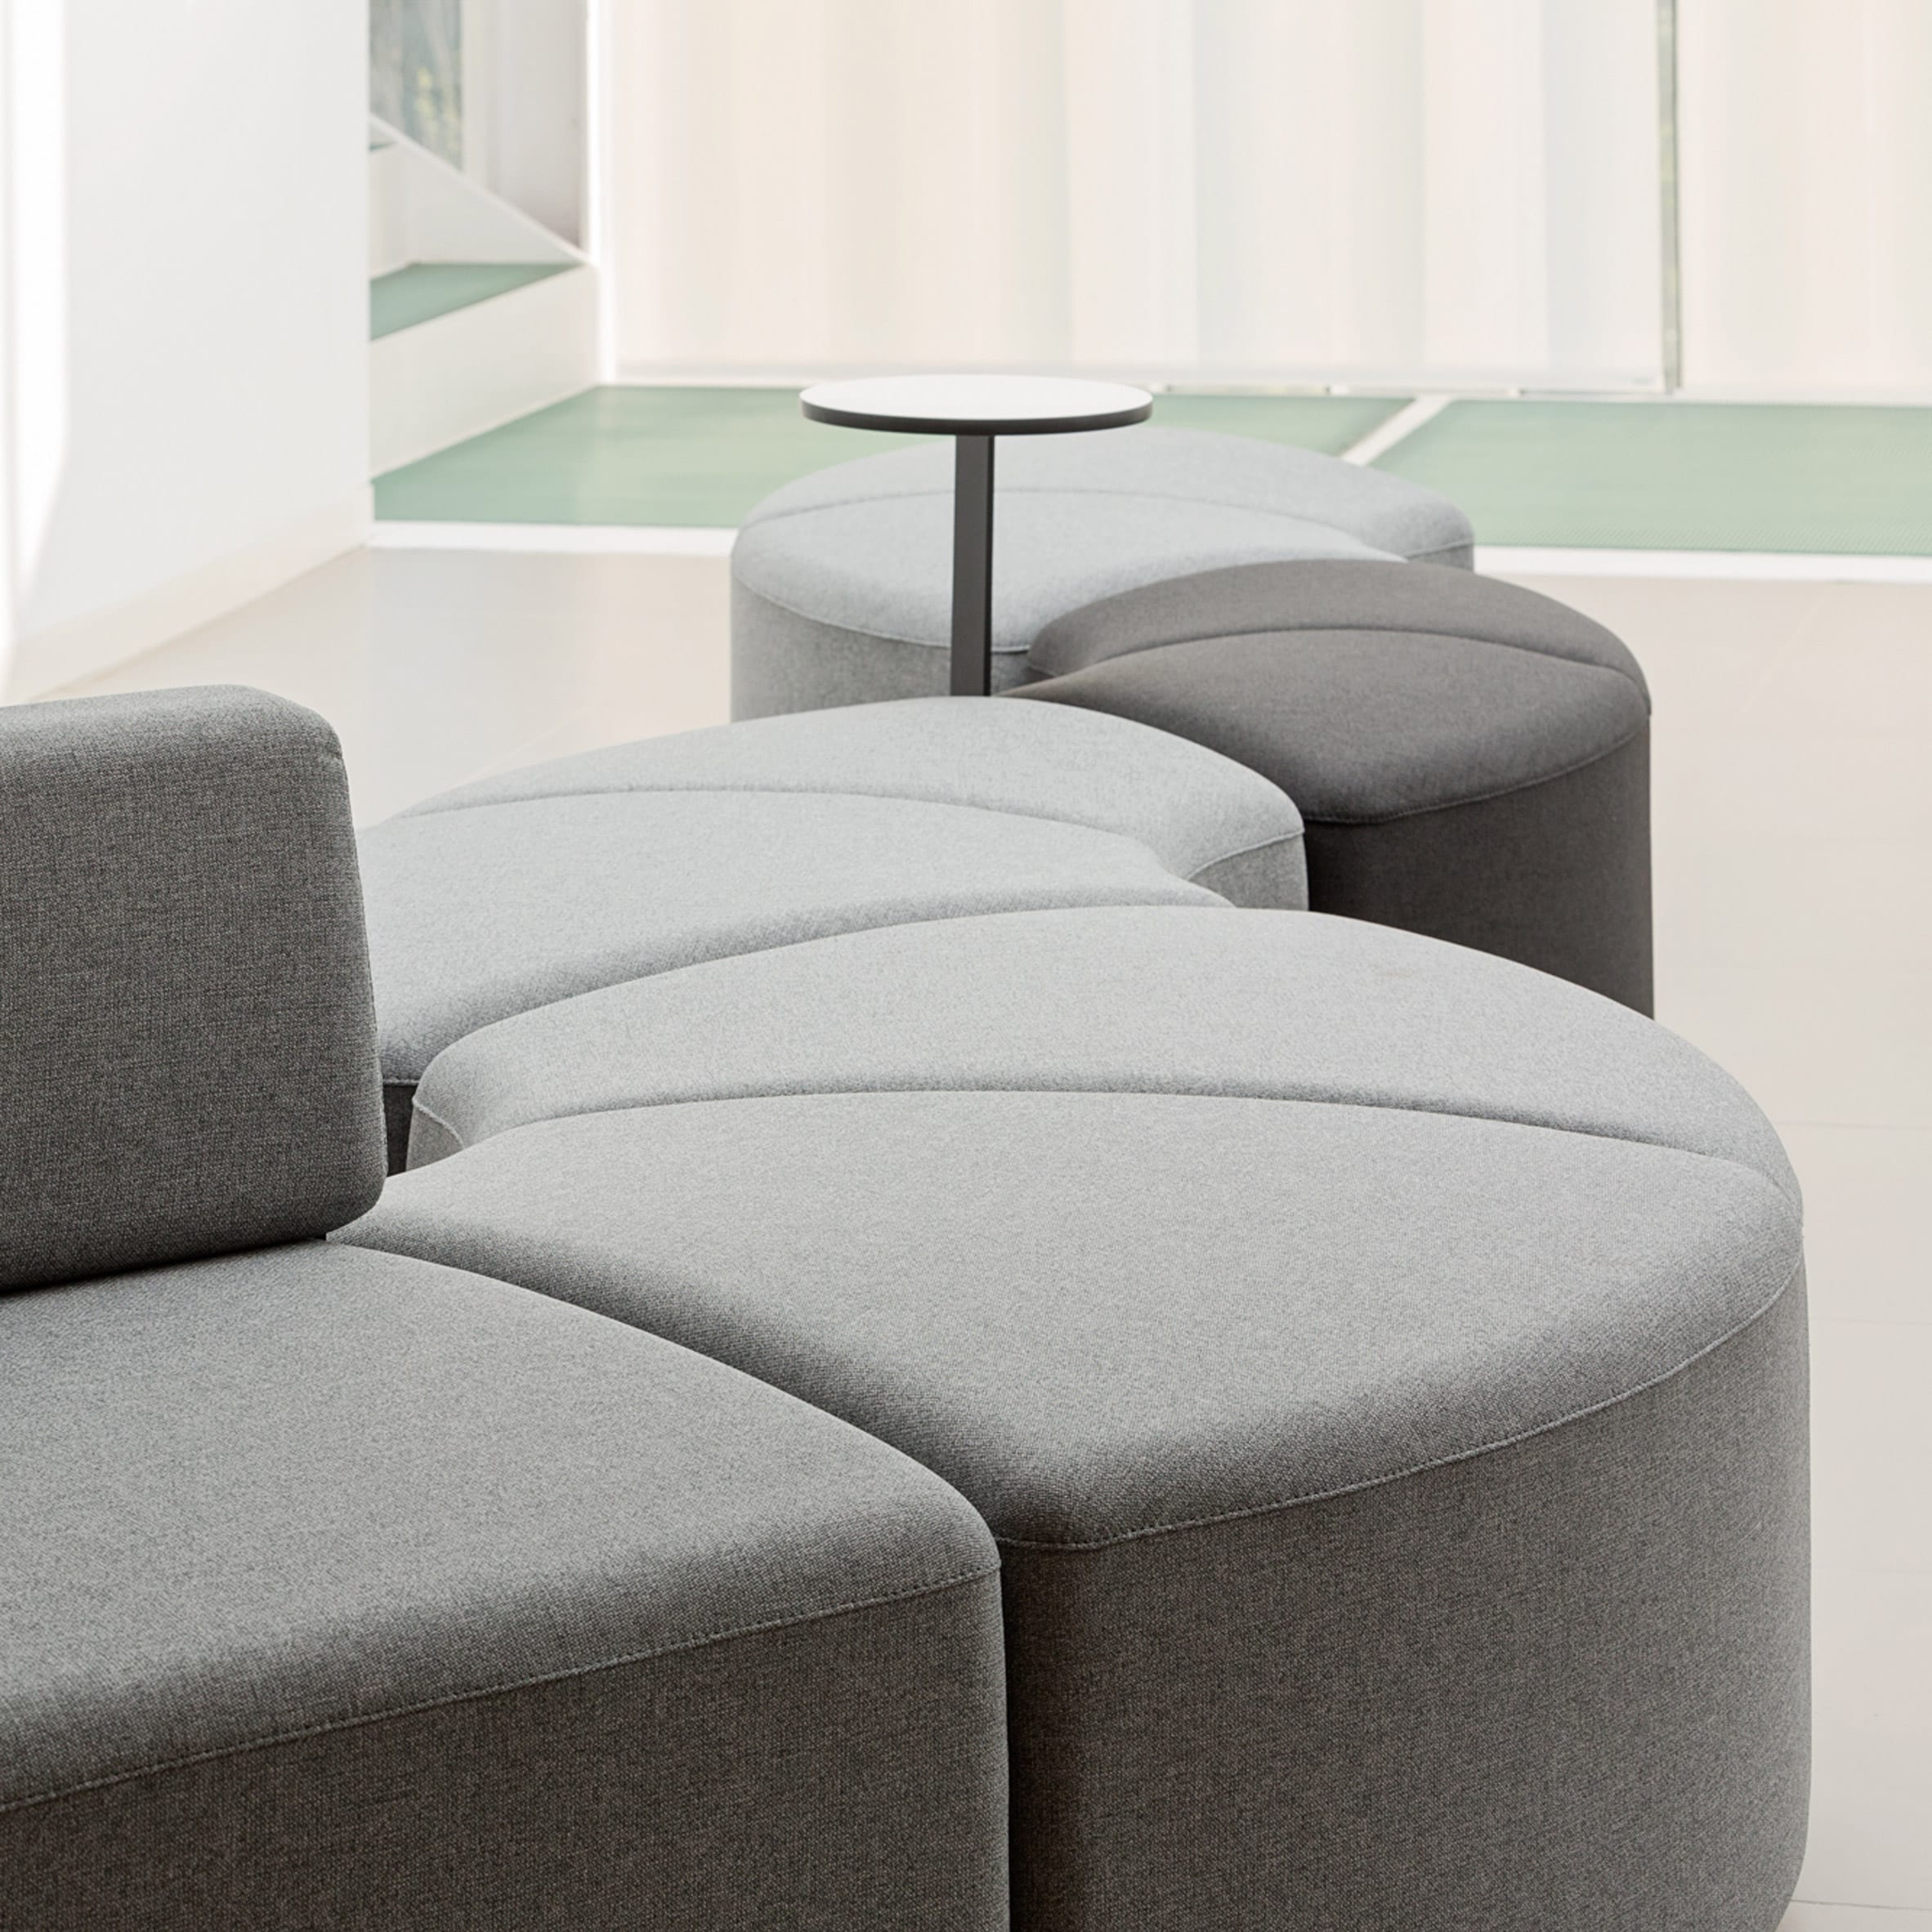 Bend sofa by Stone Designs for Actiu